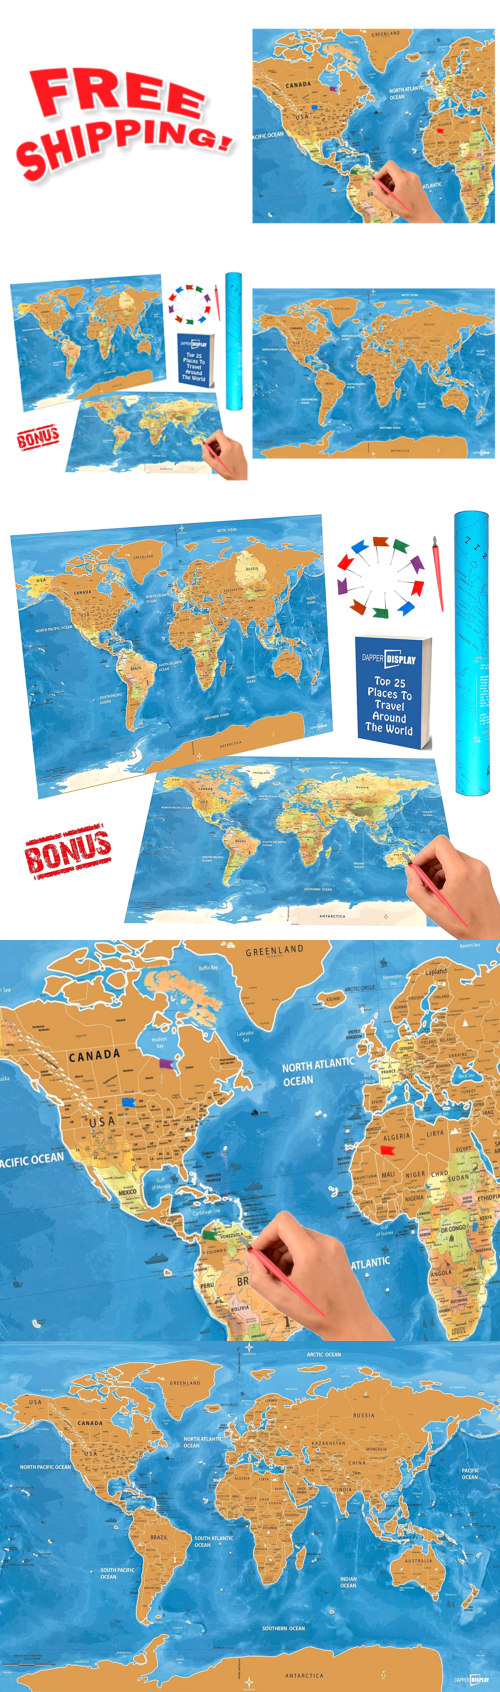 Other travel maps 164807 scratch off world travel map tracker flags other travel maps 164807 scratch off world travel map tracker flags pins scratcher pen tool gumiabroncs Images